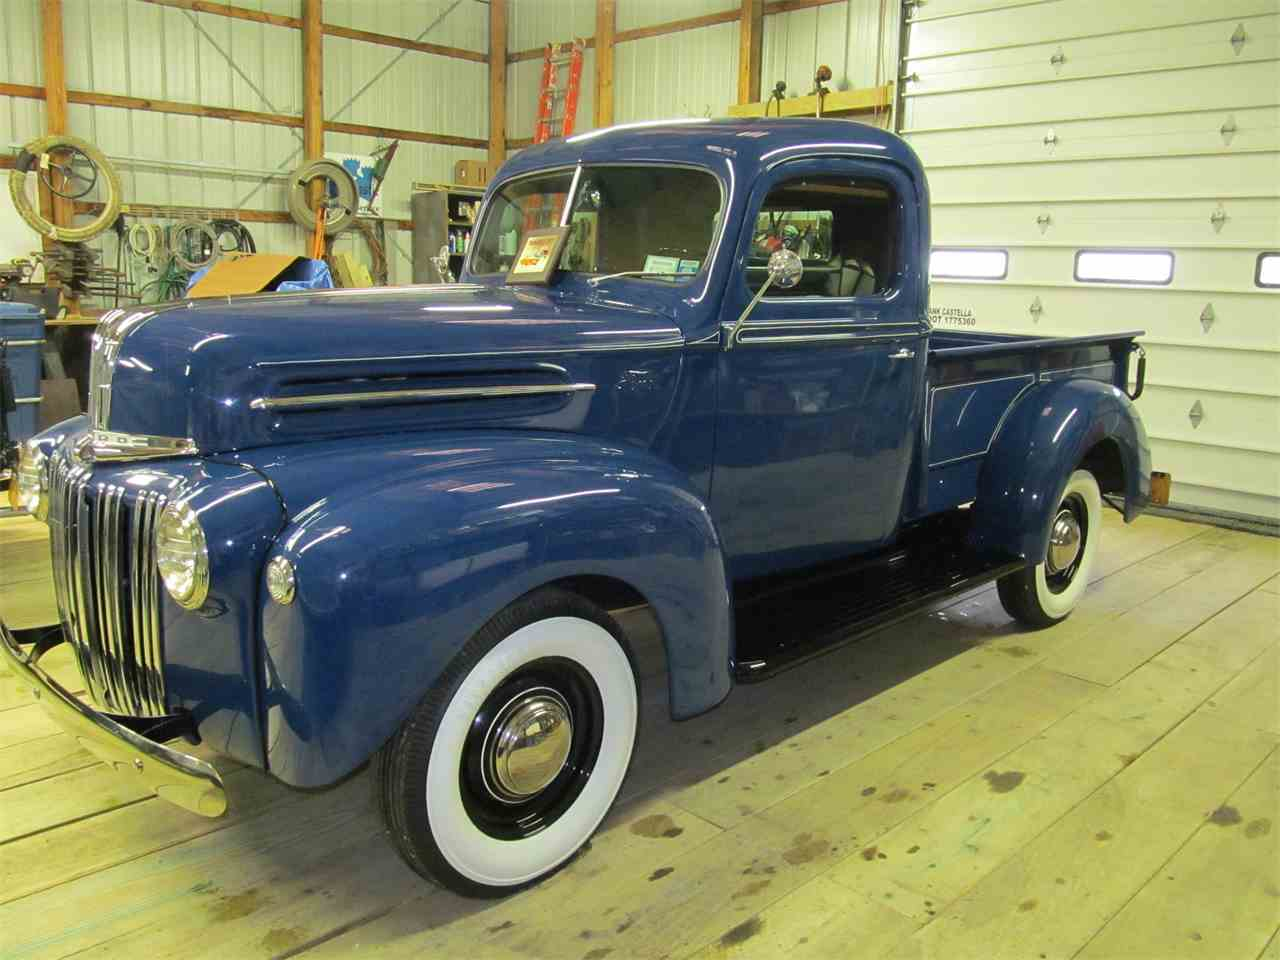 Ford Dealers Orlando >> 1946 Ford Pickup for Sale | ClassicCars.com | CC-988989